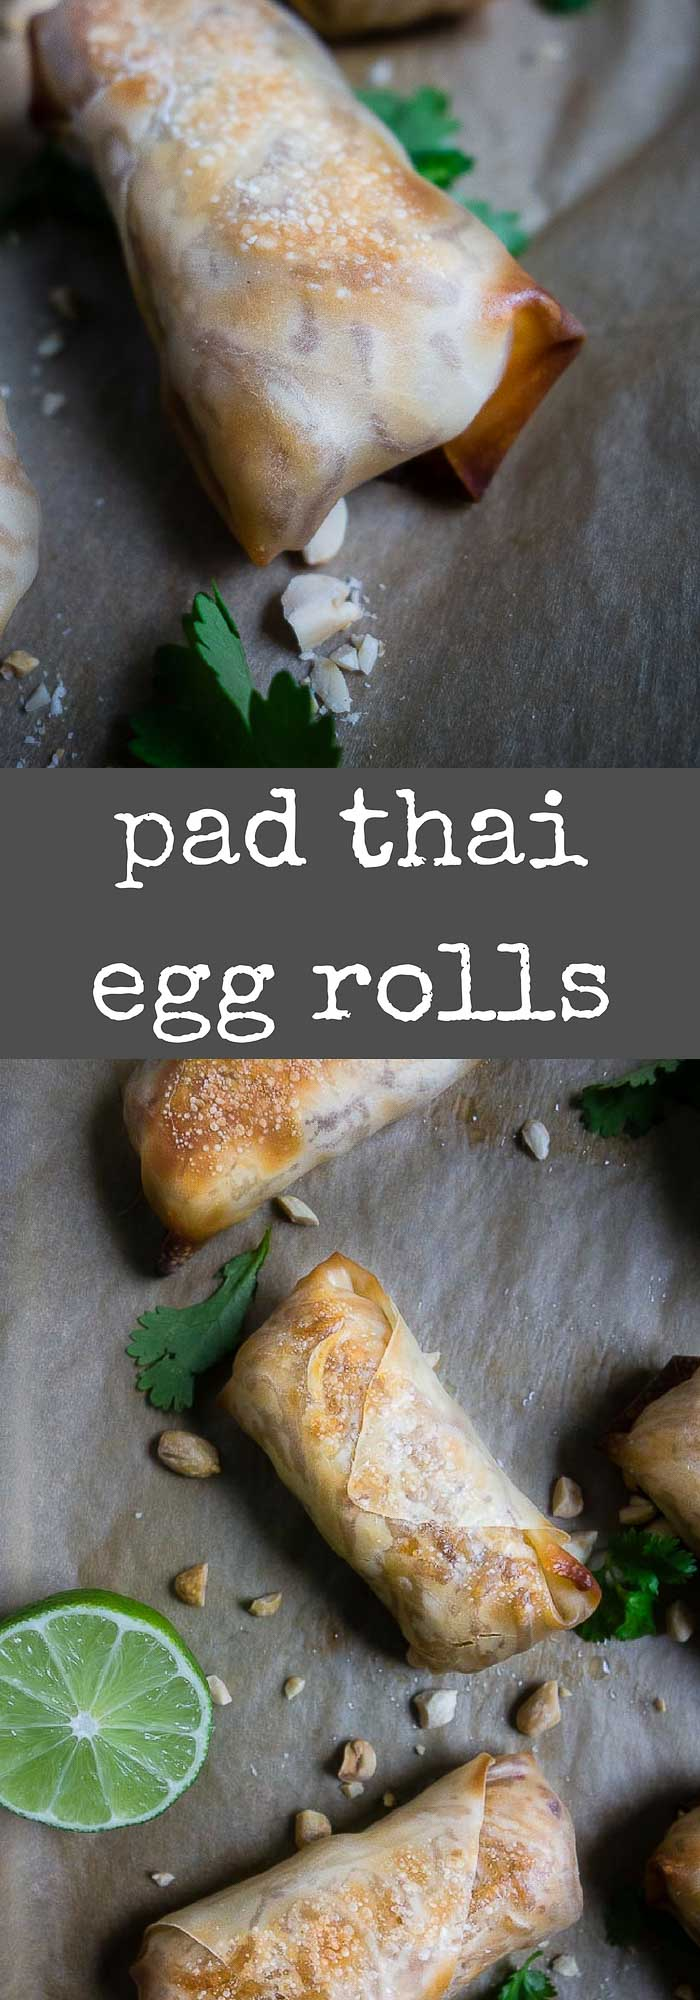 These pad thai baked egg rolls are stuffed with flavor packed chicken pad thai, baked until golden brown and crispy and served with a spicy peanut dipping sauce.spring rolls | homemade pad thai | chicken egg rolls | thai egg rolls | baked egg rolls | best thai appetizers | chicken pad thai egg rolls | crispy egg rolls | easy egg roll recipe | thai peanut sauce